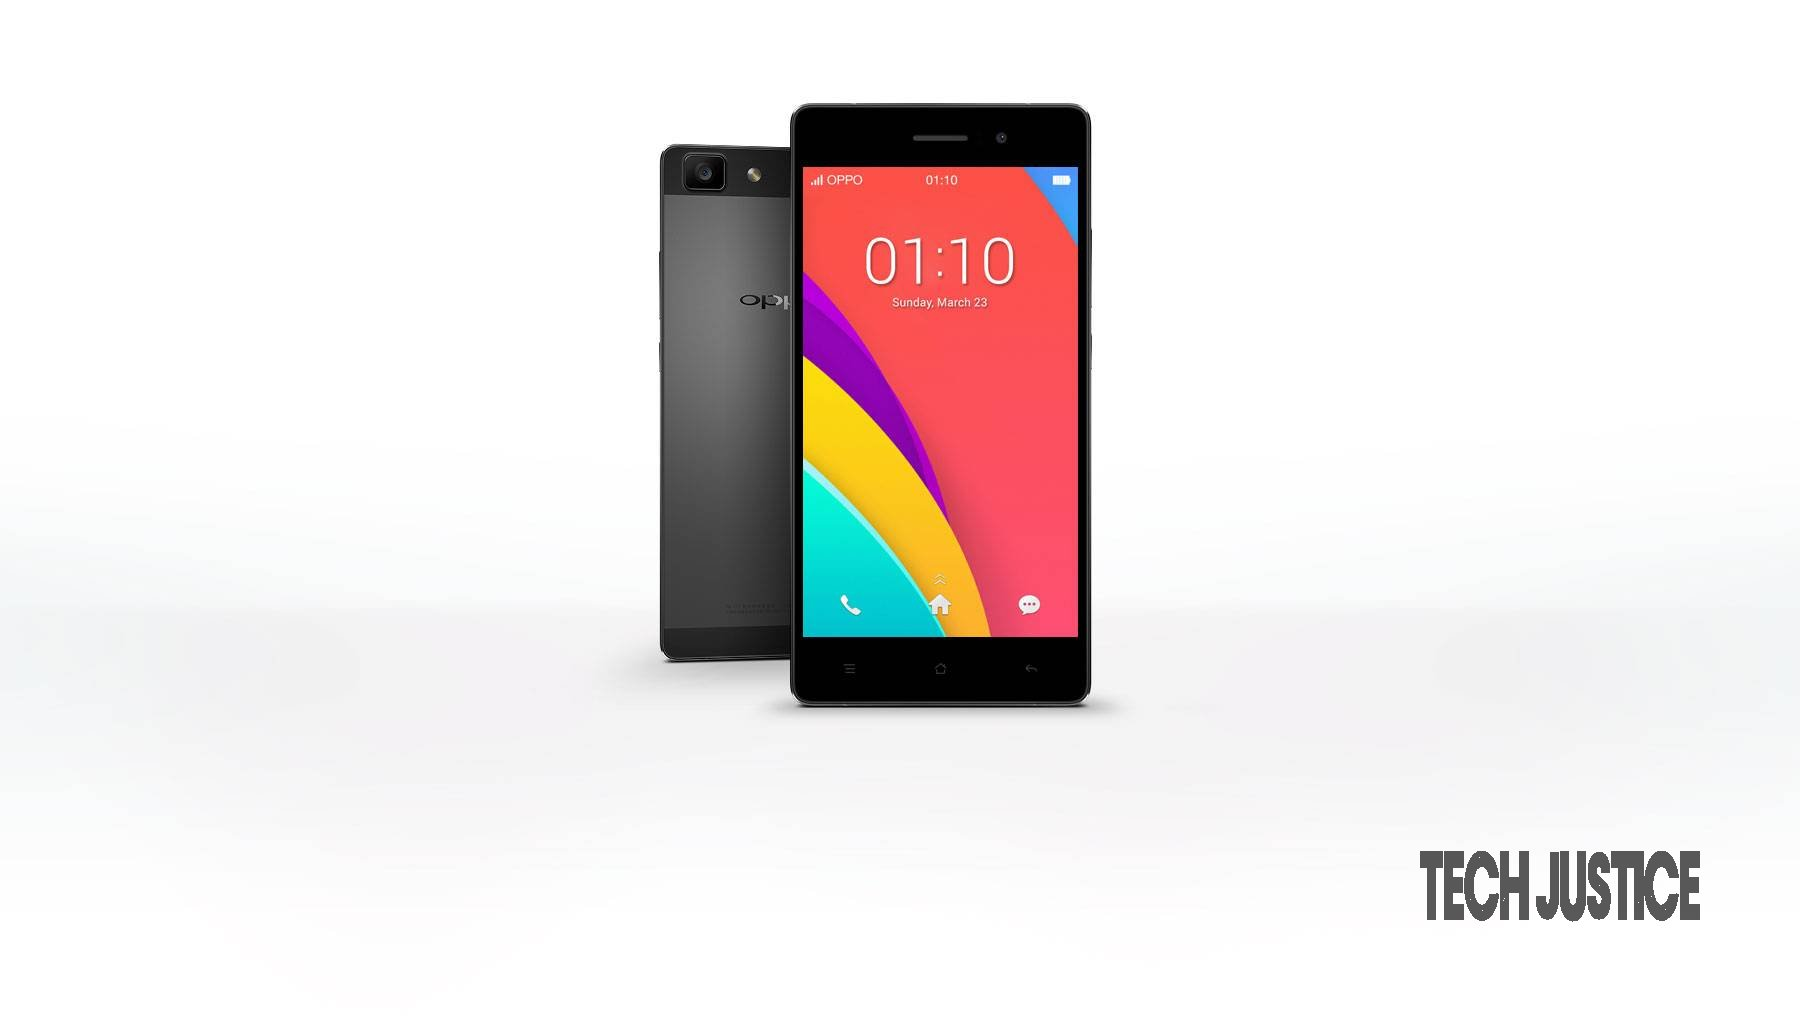 Oppo R5s tech justice